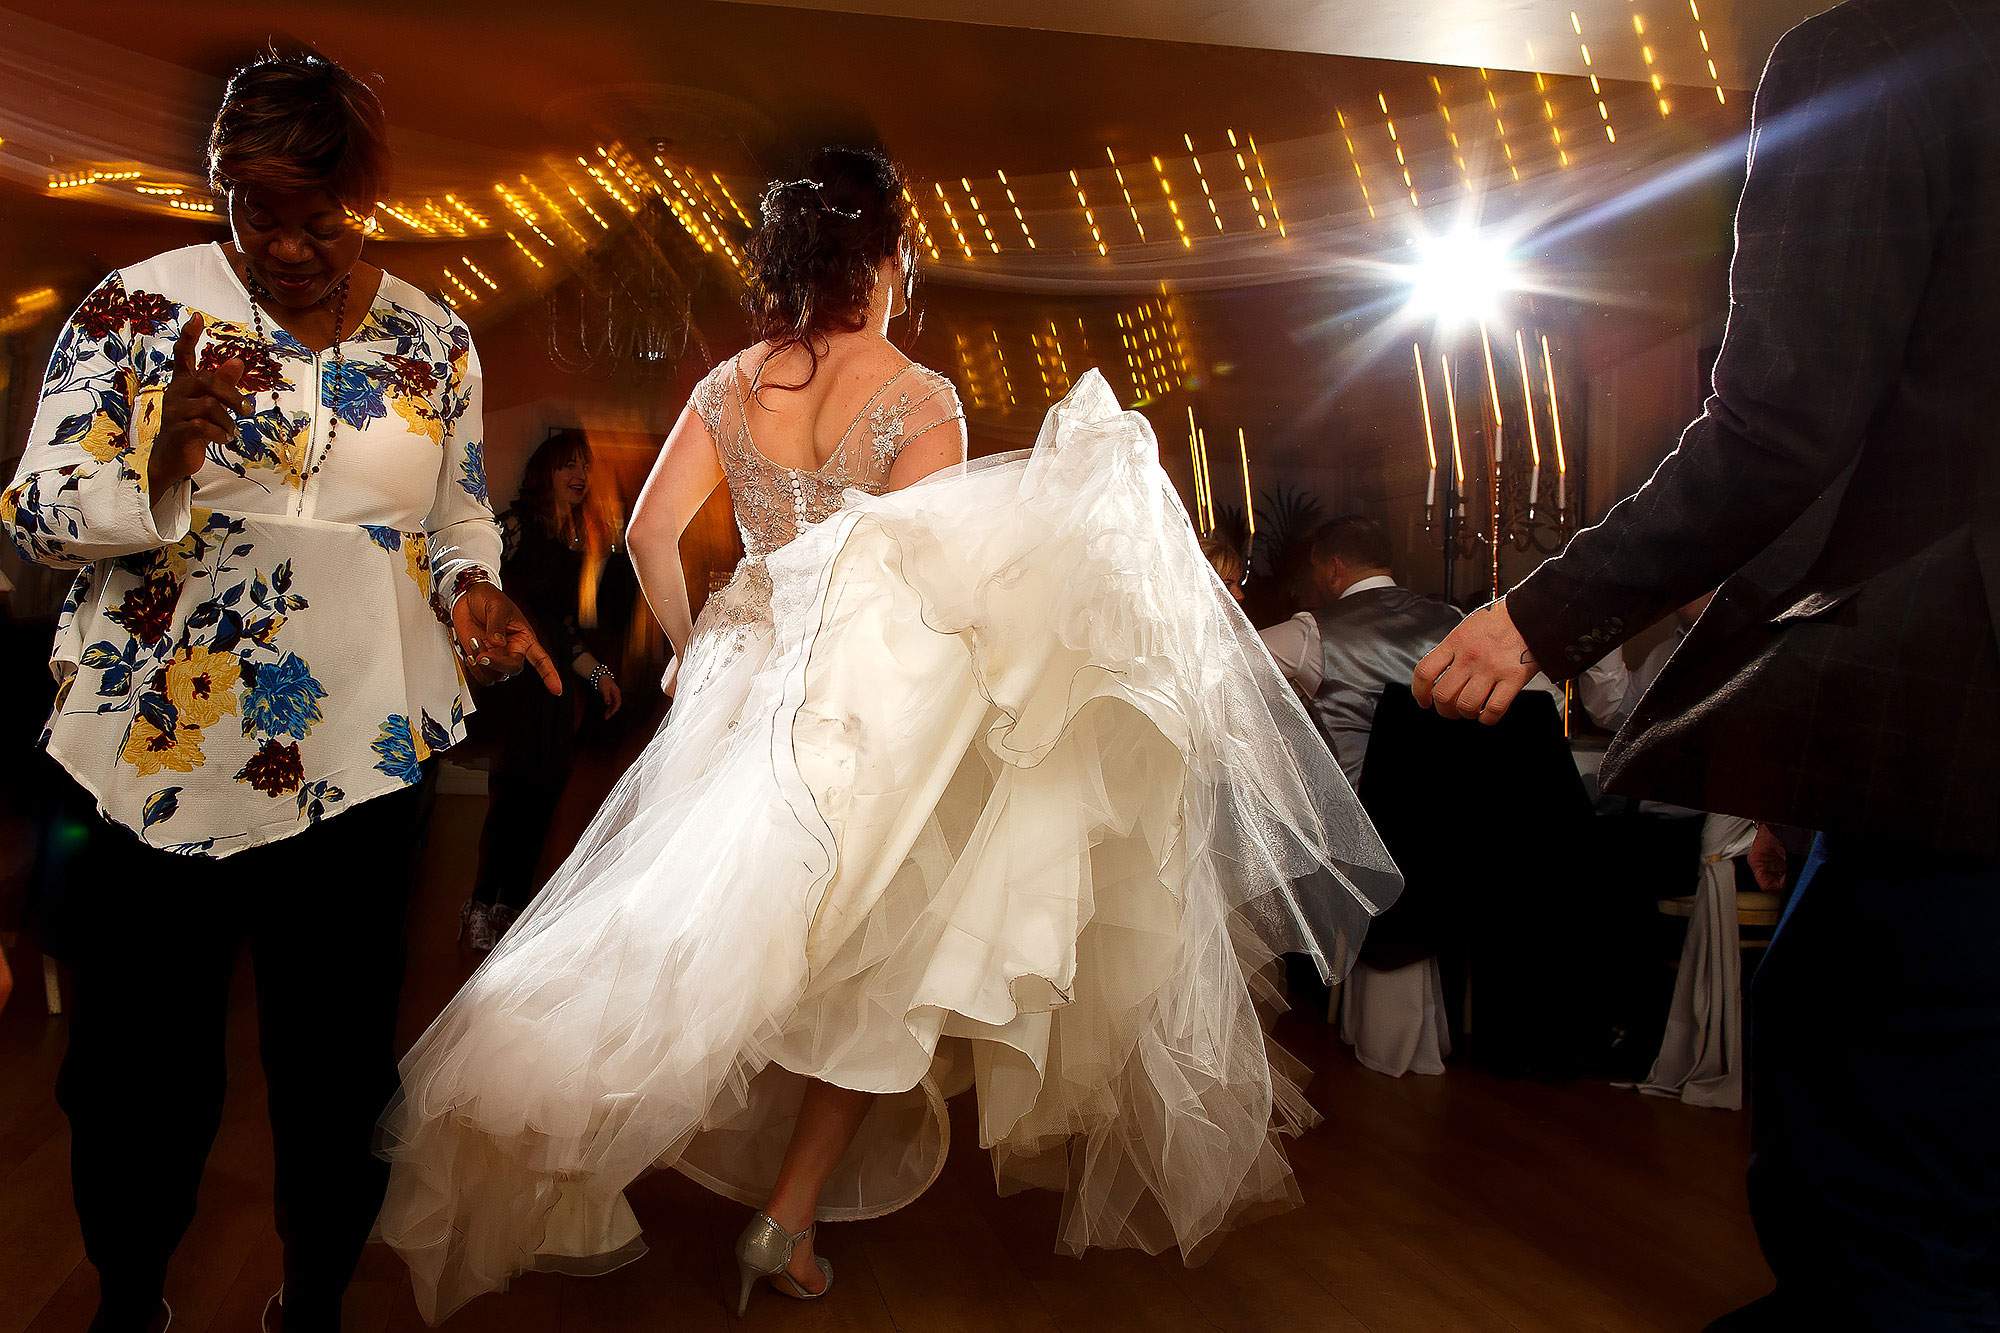 Bride throwing her wedding dress round the dance floor as she dances with wedding guests | Eaves Hall wedding photography by Toni Darcy